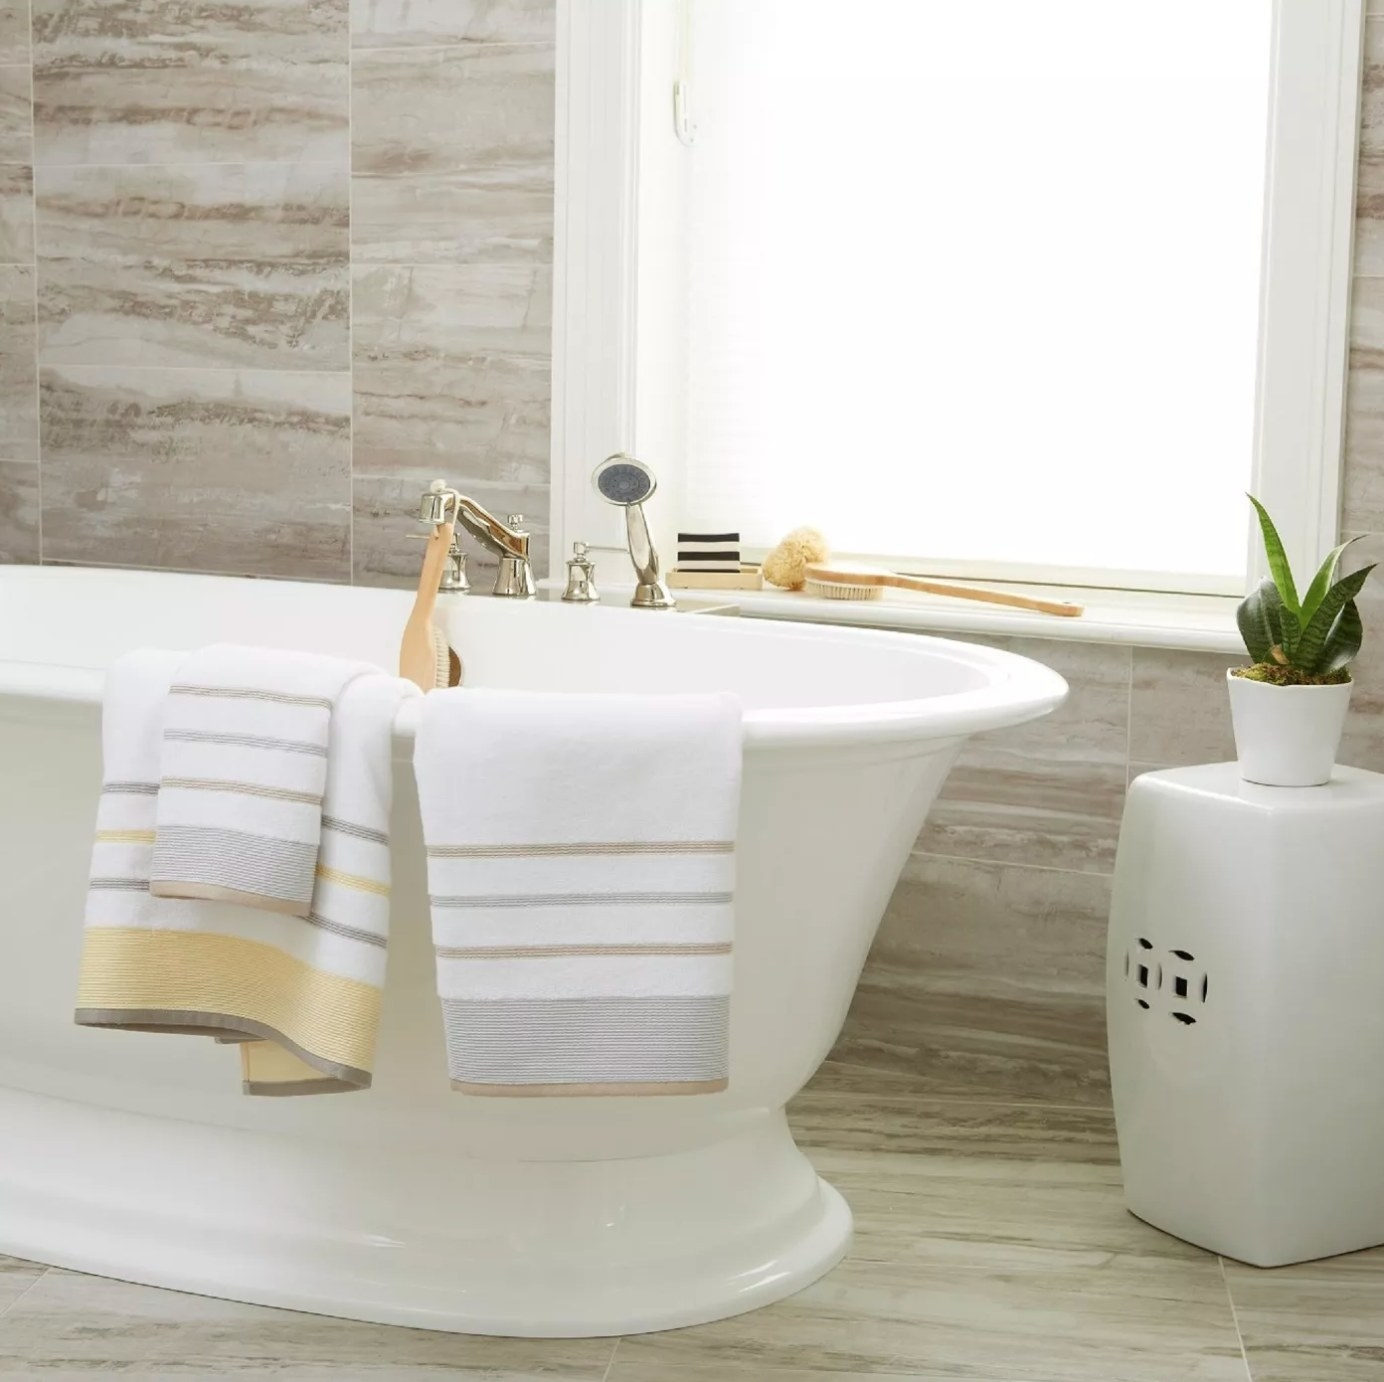 The cotton striped towel set in white